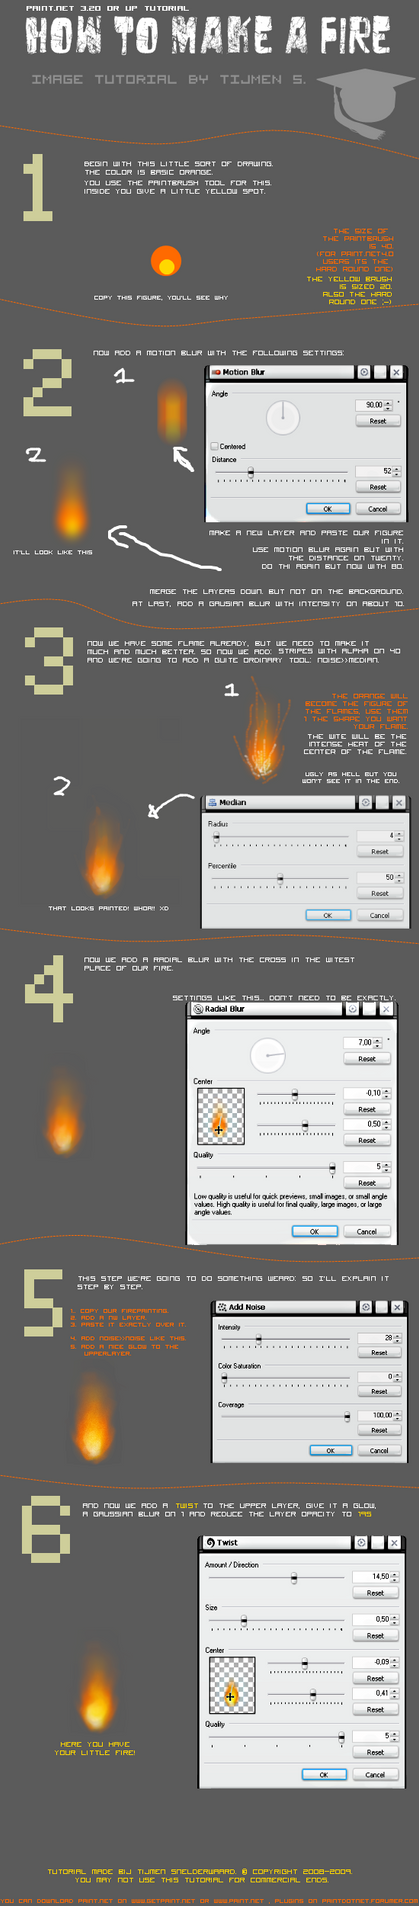 make a fire with paint.net by theartistic on DeviantArt